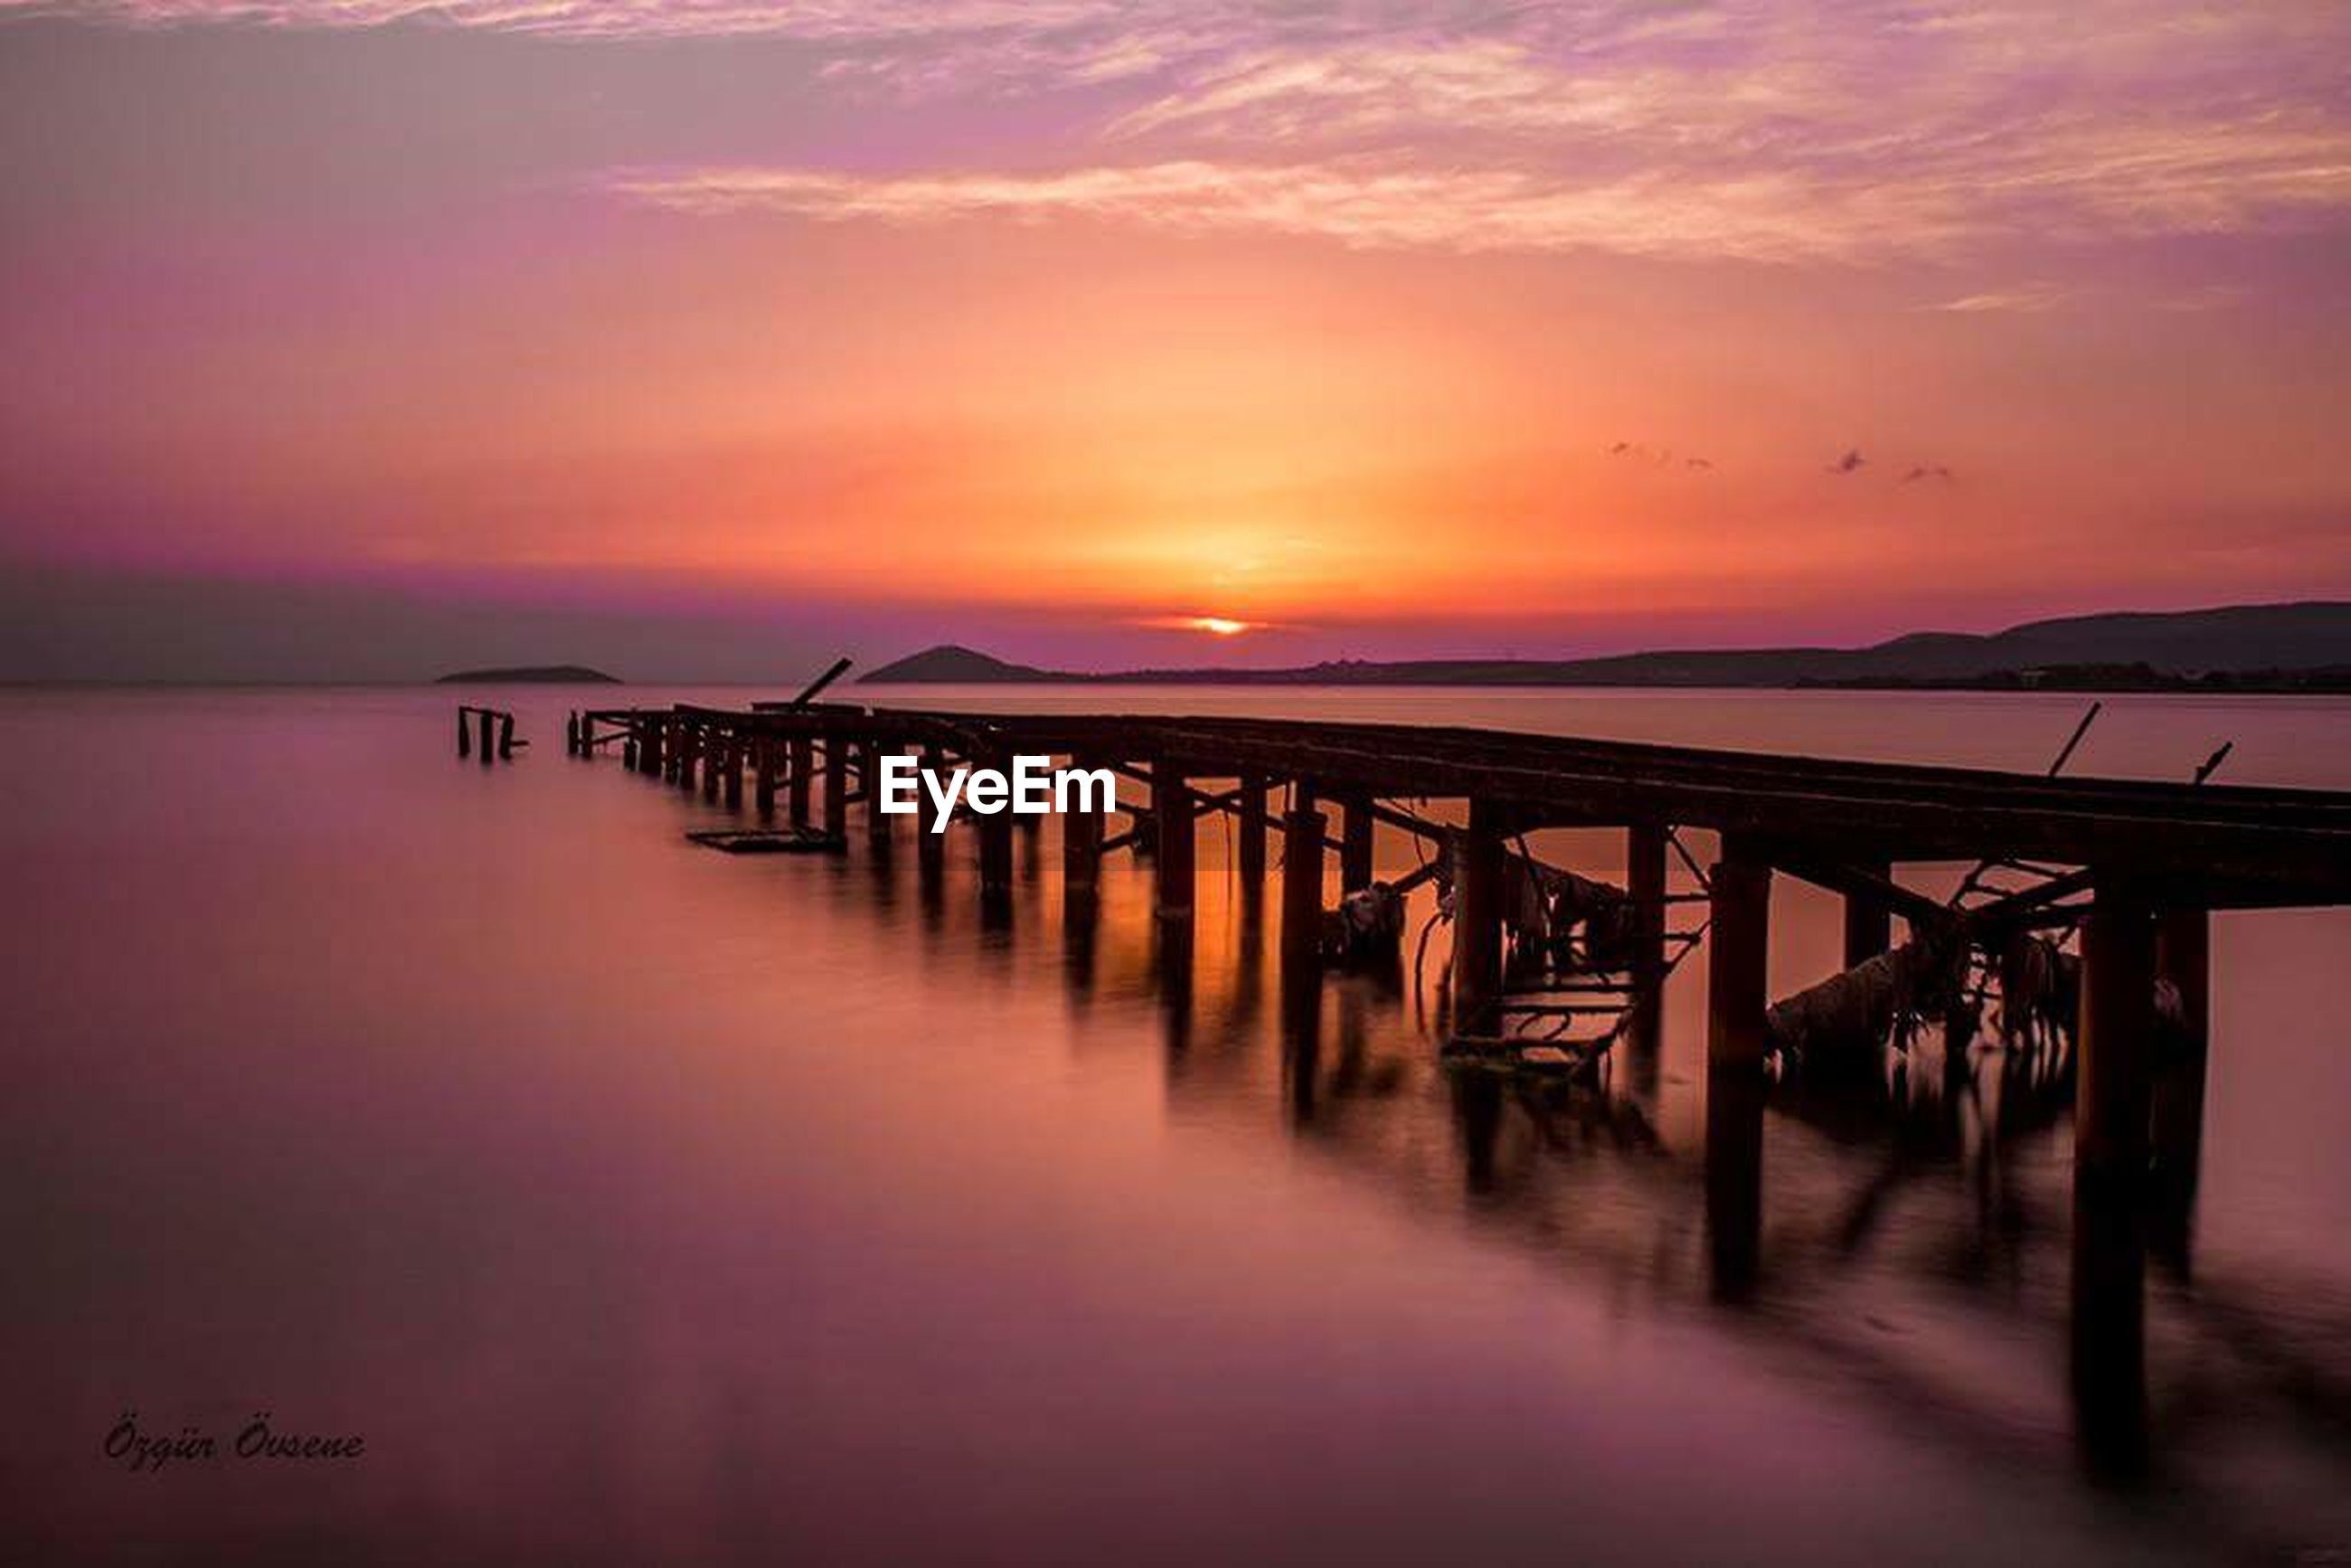 sunset, pier, sea, water, tranquility, romantic sky, outdoors, beauty in nature, landscape, nature, harbor, no people, sky